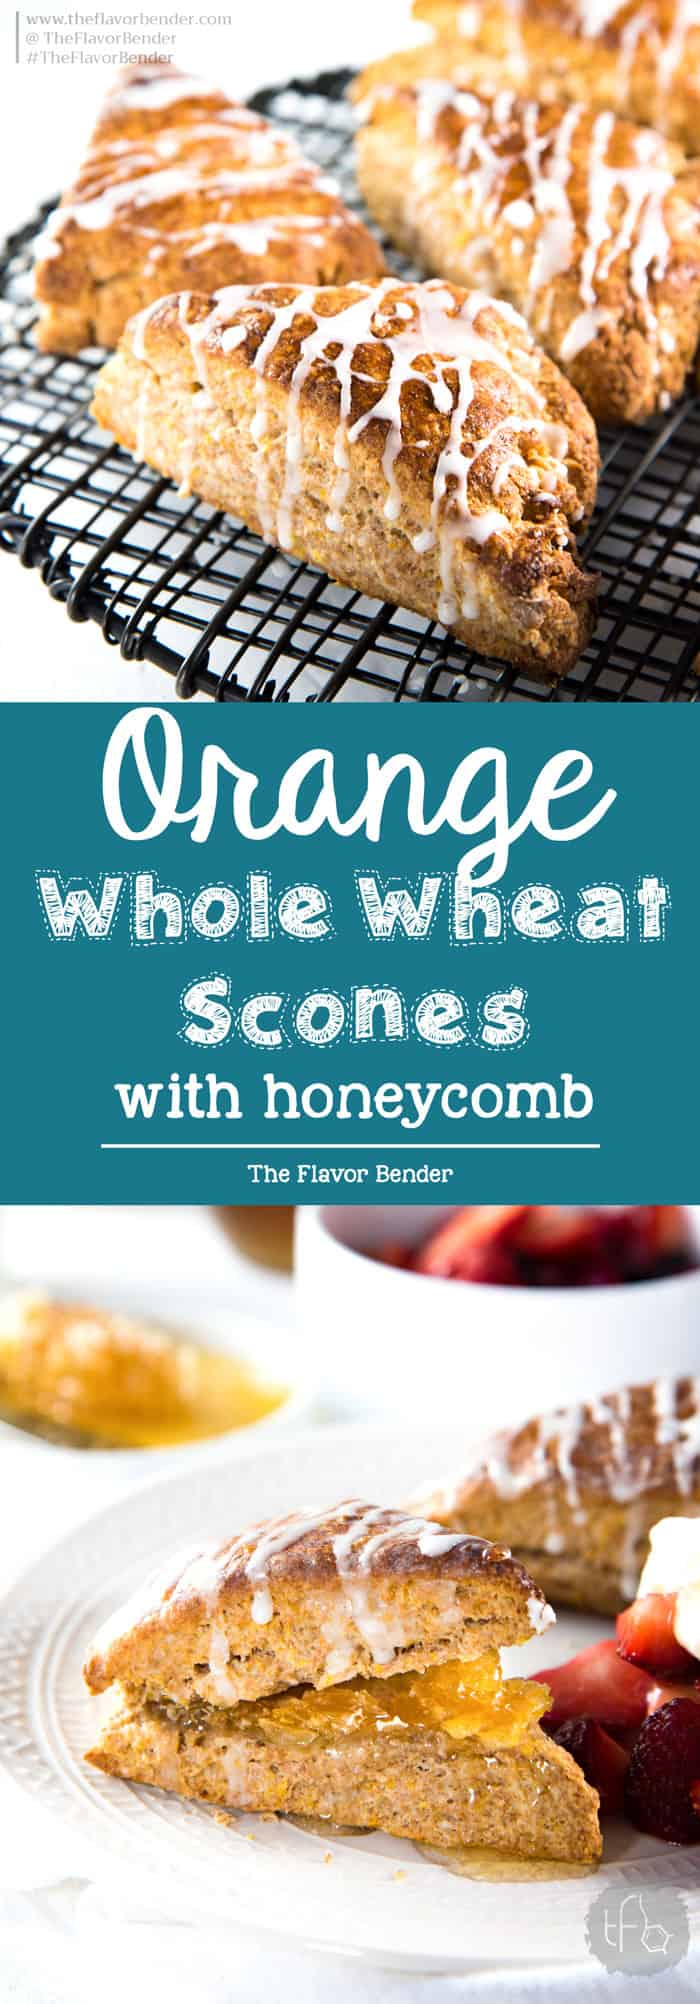 Orange Whole Wheat Scones -Nutty, fragrant and delicious with a soft and tender crumb. Flavored with orange zest, orange blossom water and honey and perfect for breakfast. [ad]  #DonVictorHoney #HappyHealthyHoney